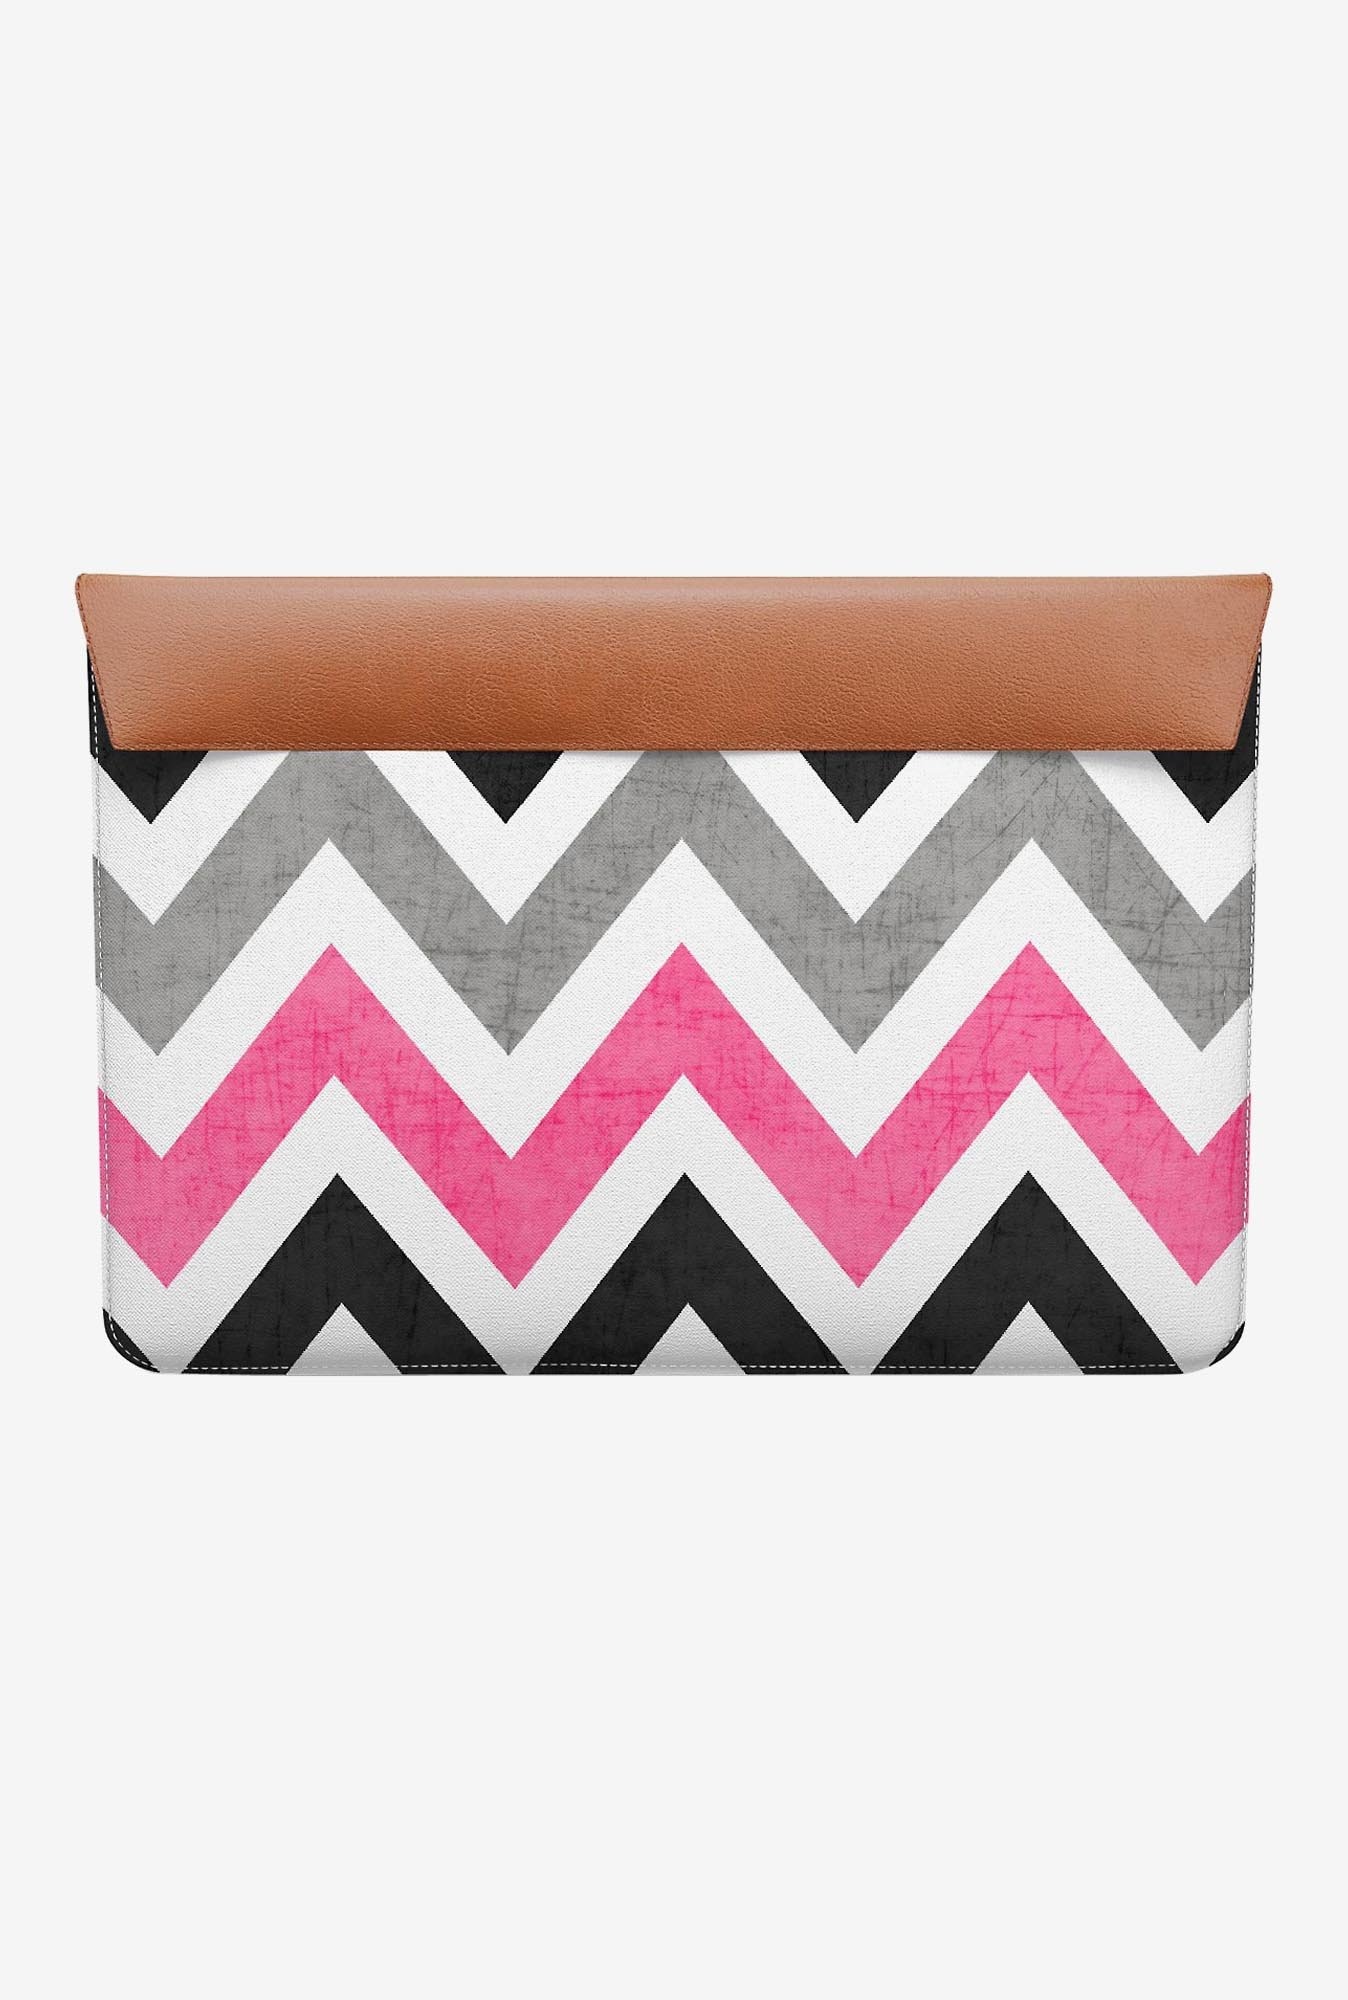 DailyObjects Cosmopolitan MacBook Pro 13 Envelope Sleeve